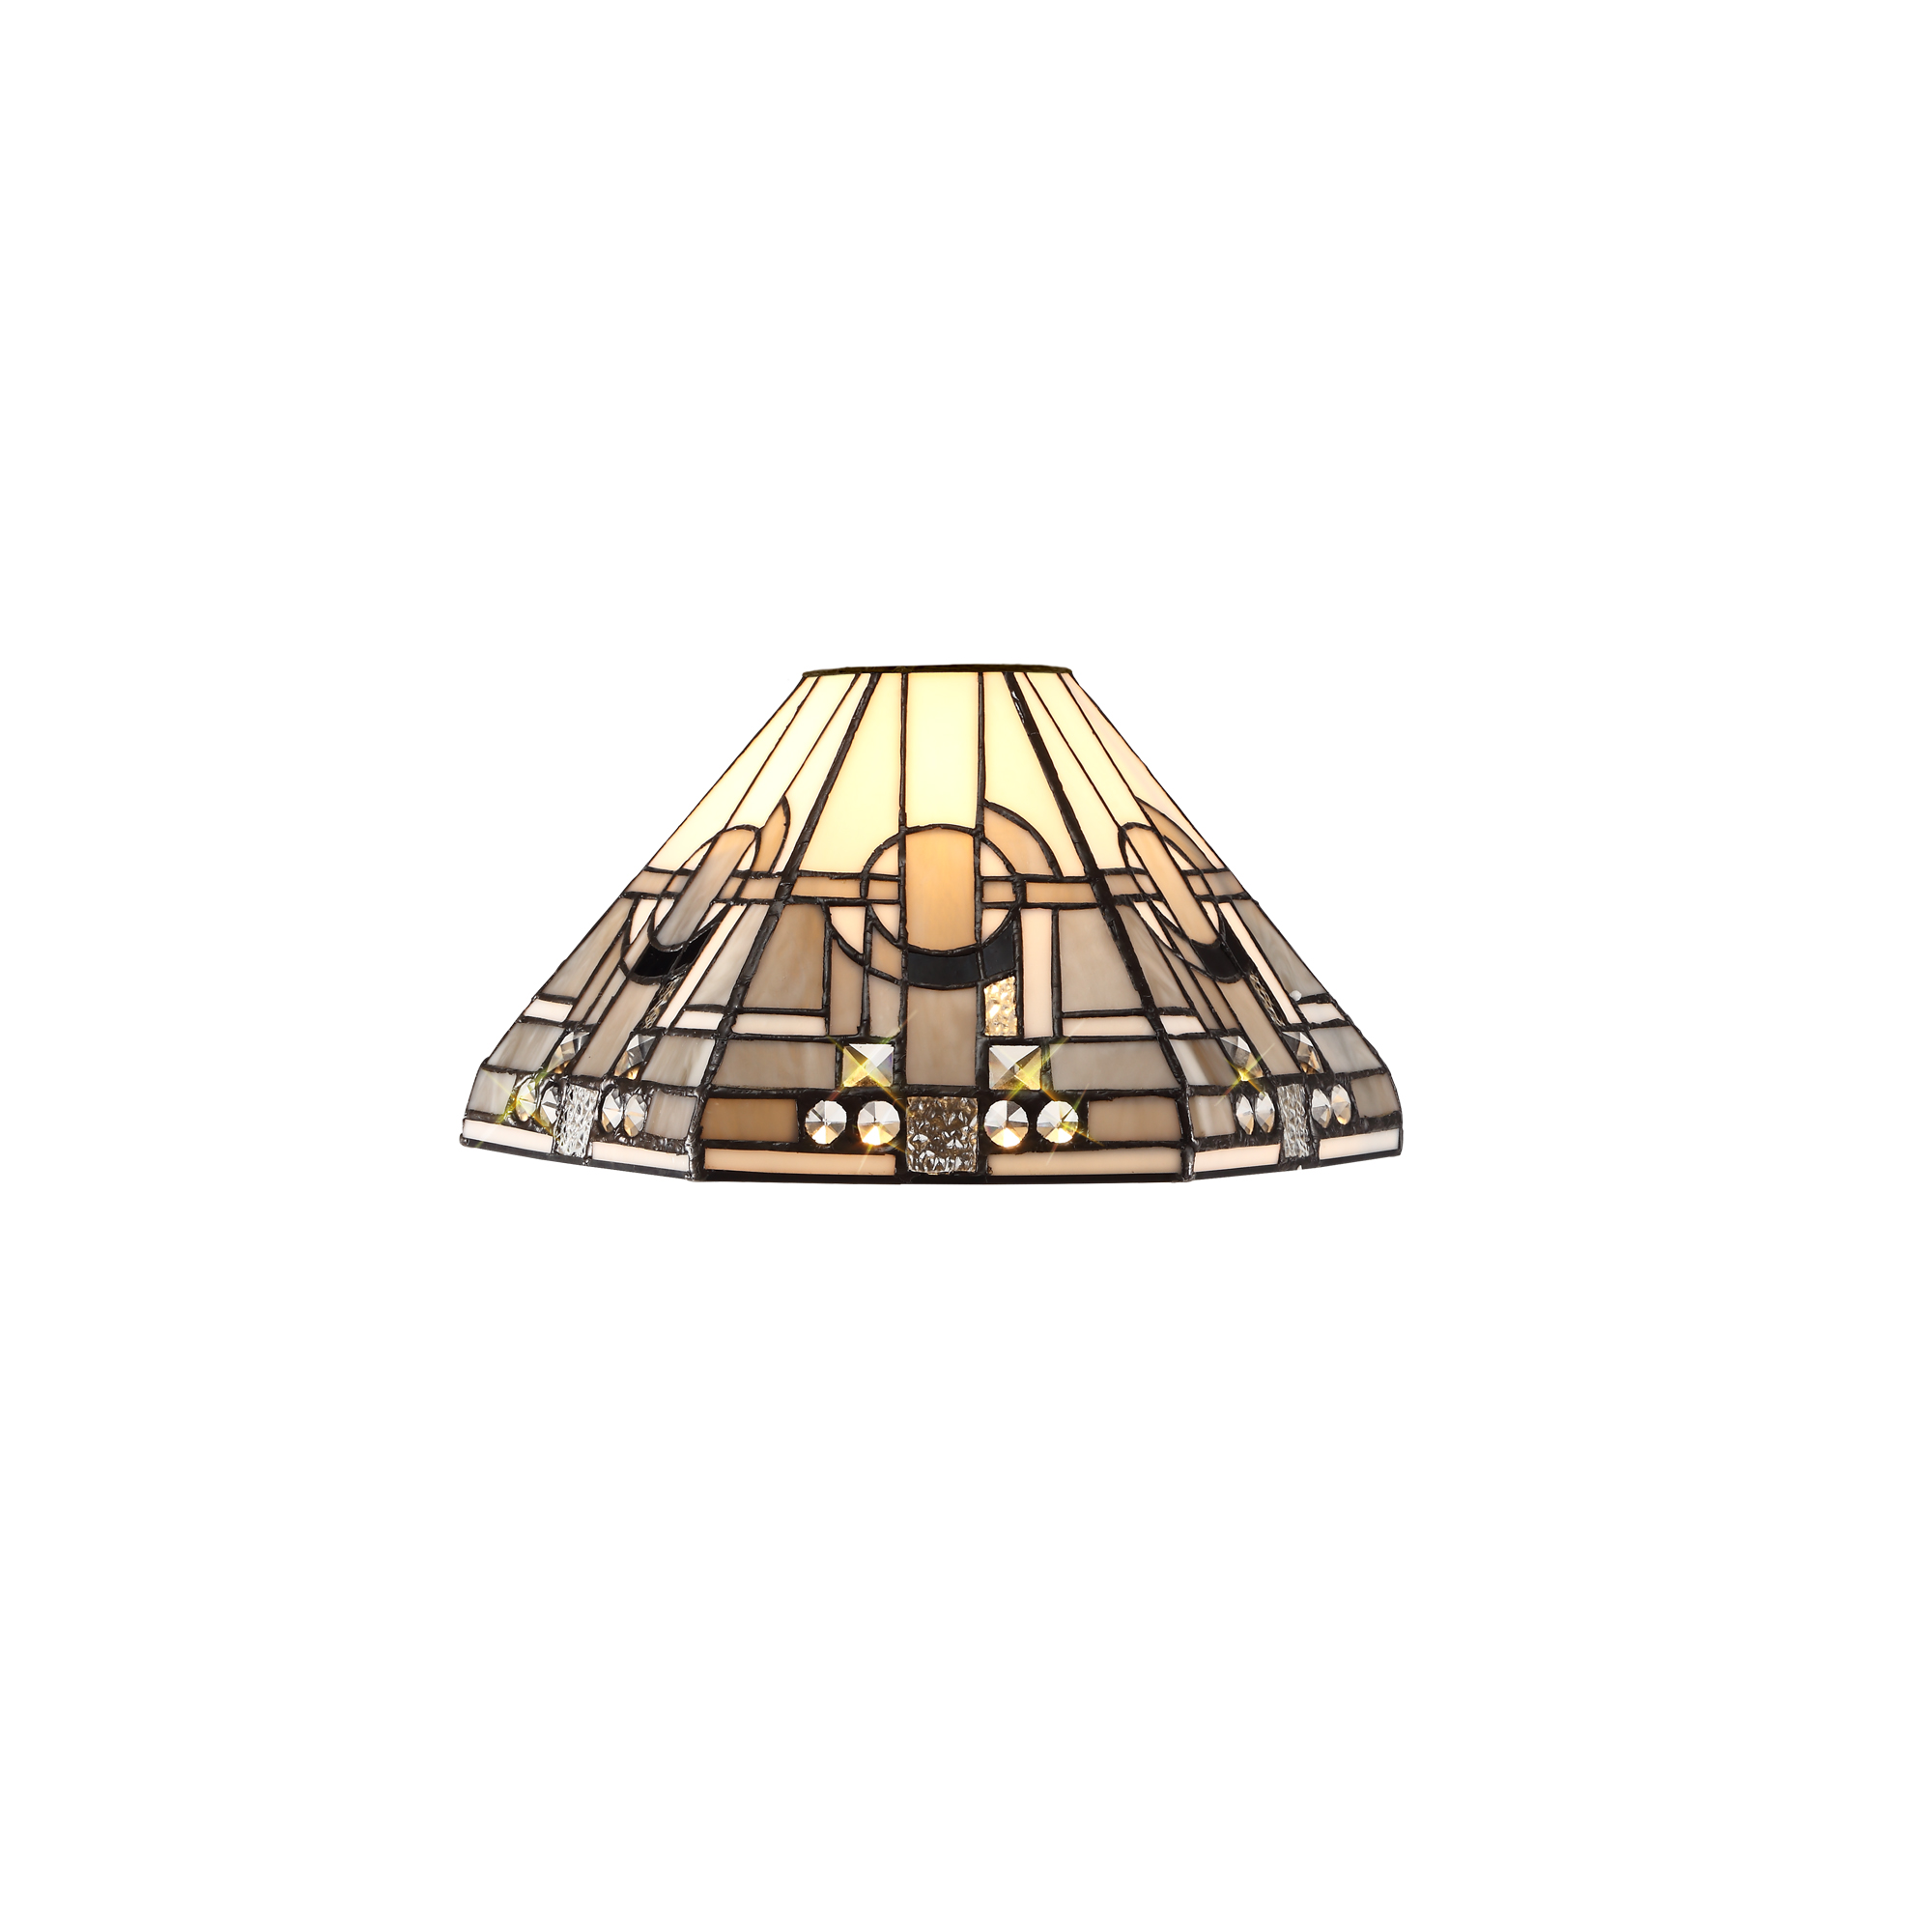 2 Light Uplighter Pendant E27 With 30cm Tiffany Shade, White/Grey/Black/Clear Crystal/Aged Antique Brass